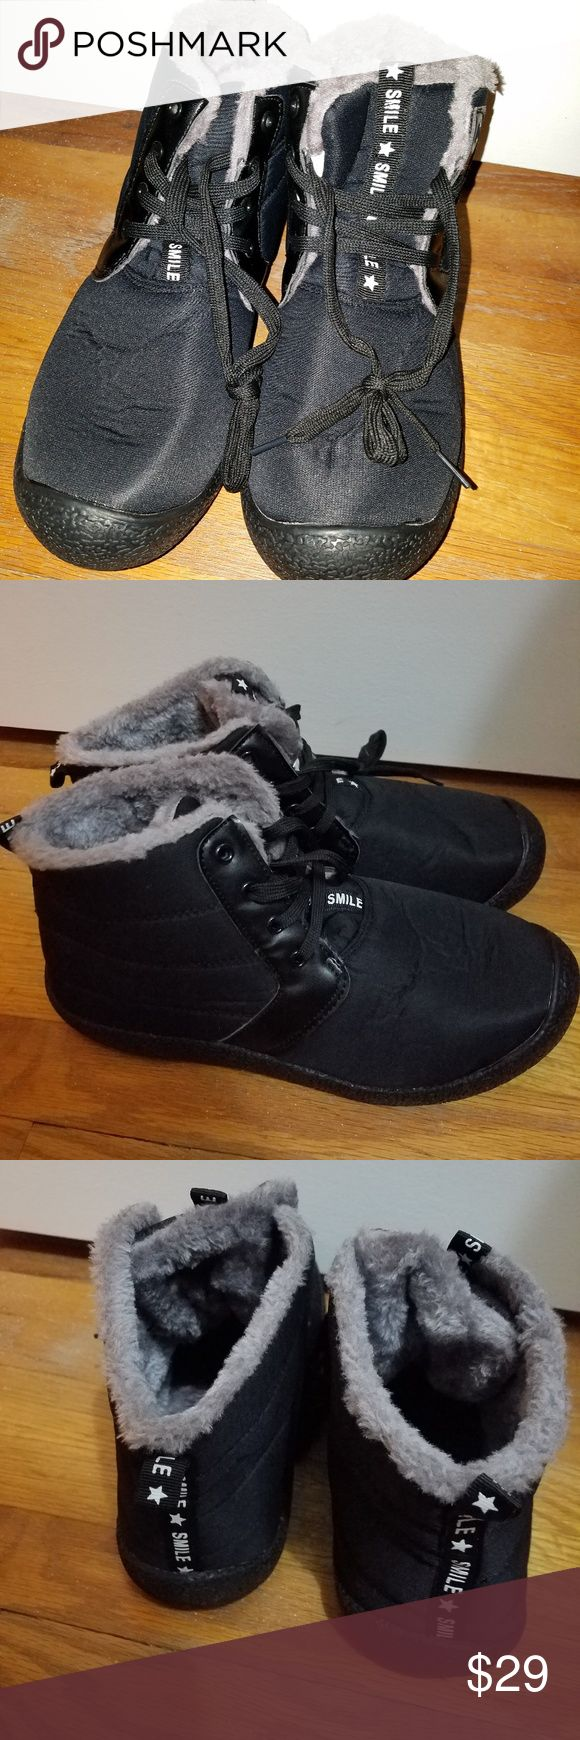 Men's winter boots Mens winter boots, Winter boots, Men